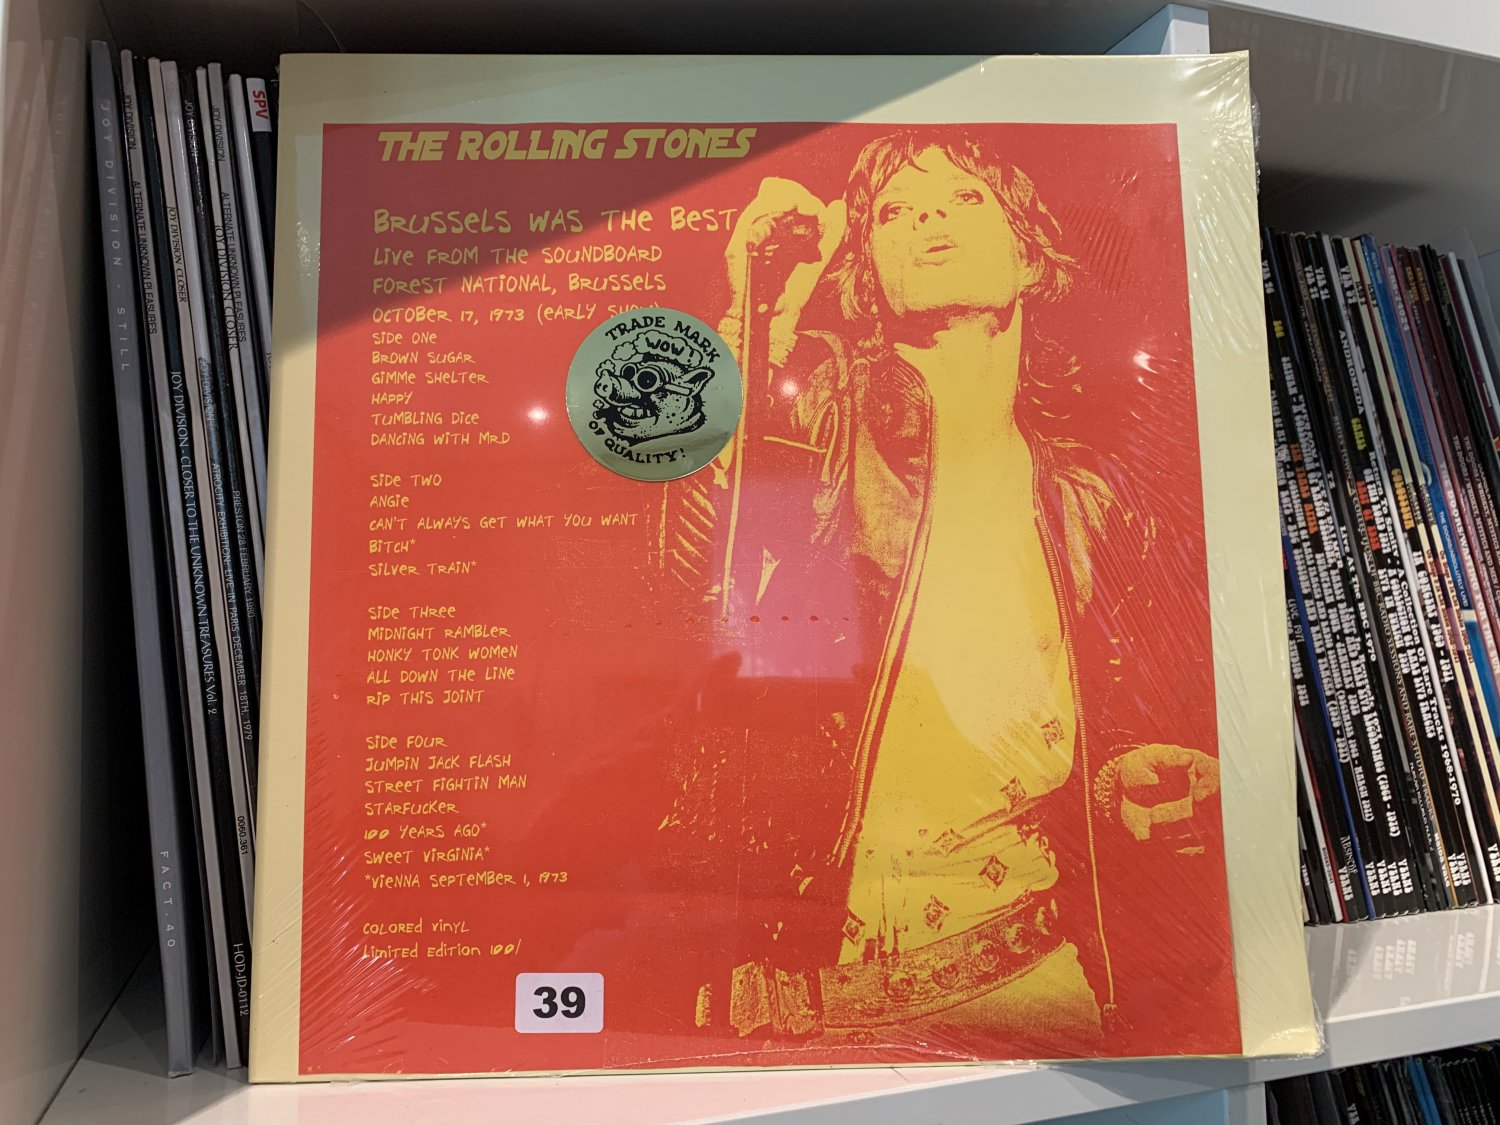 THE ROLLING STONES 2LP Brussels was the best